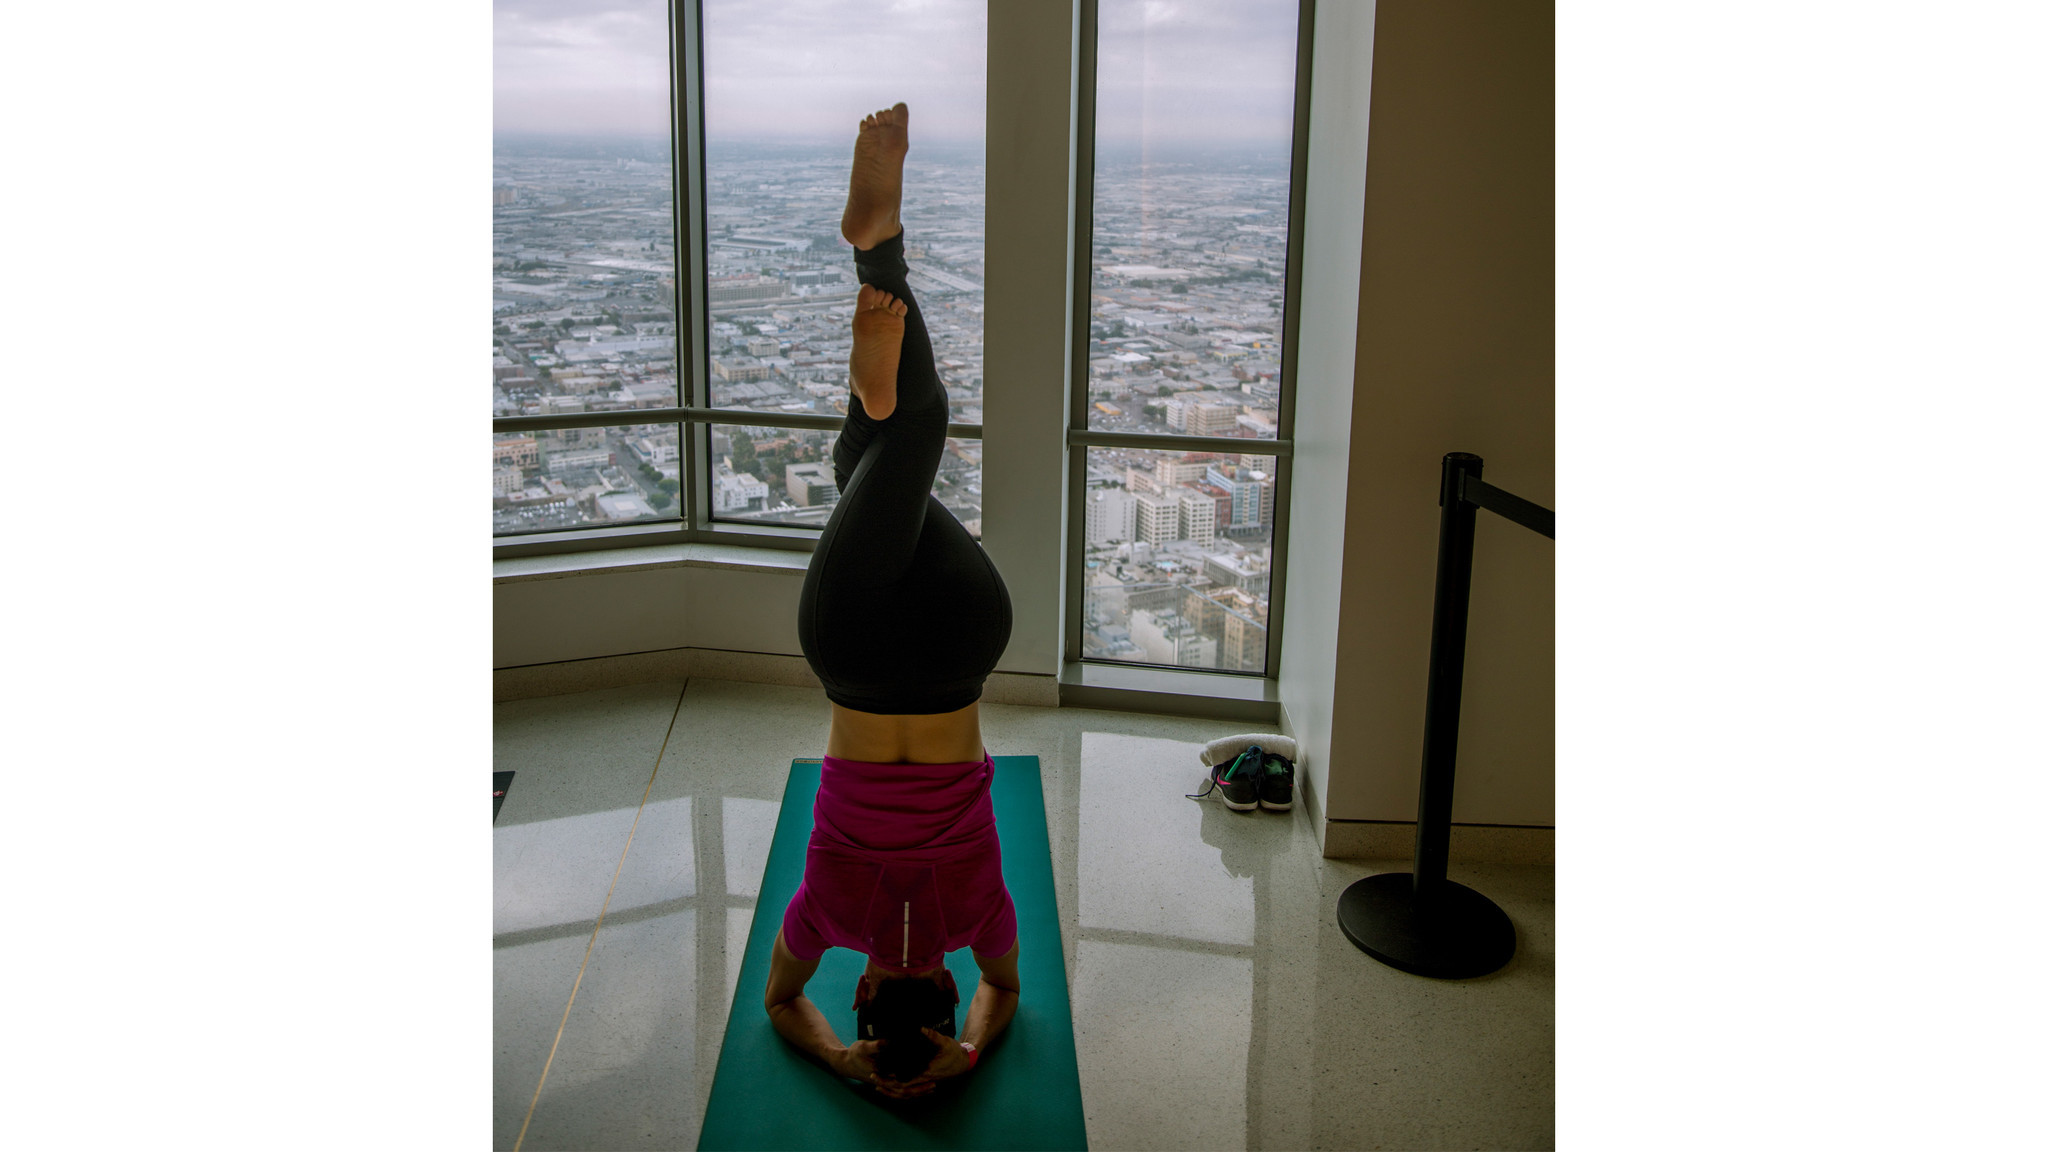 Yoga in the clouds takes place on alternate Mondays at Oue Skyspace LA, at the top of downtown's US Bank Tower